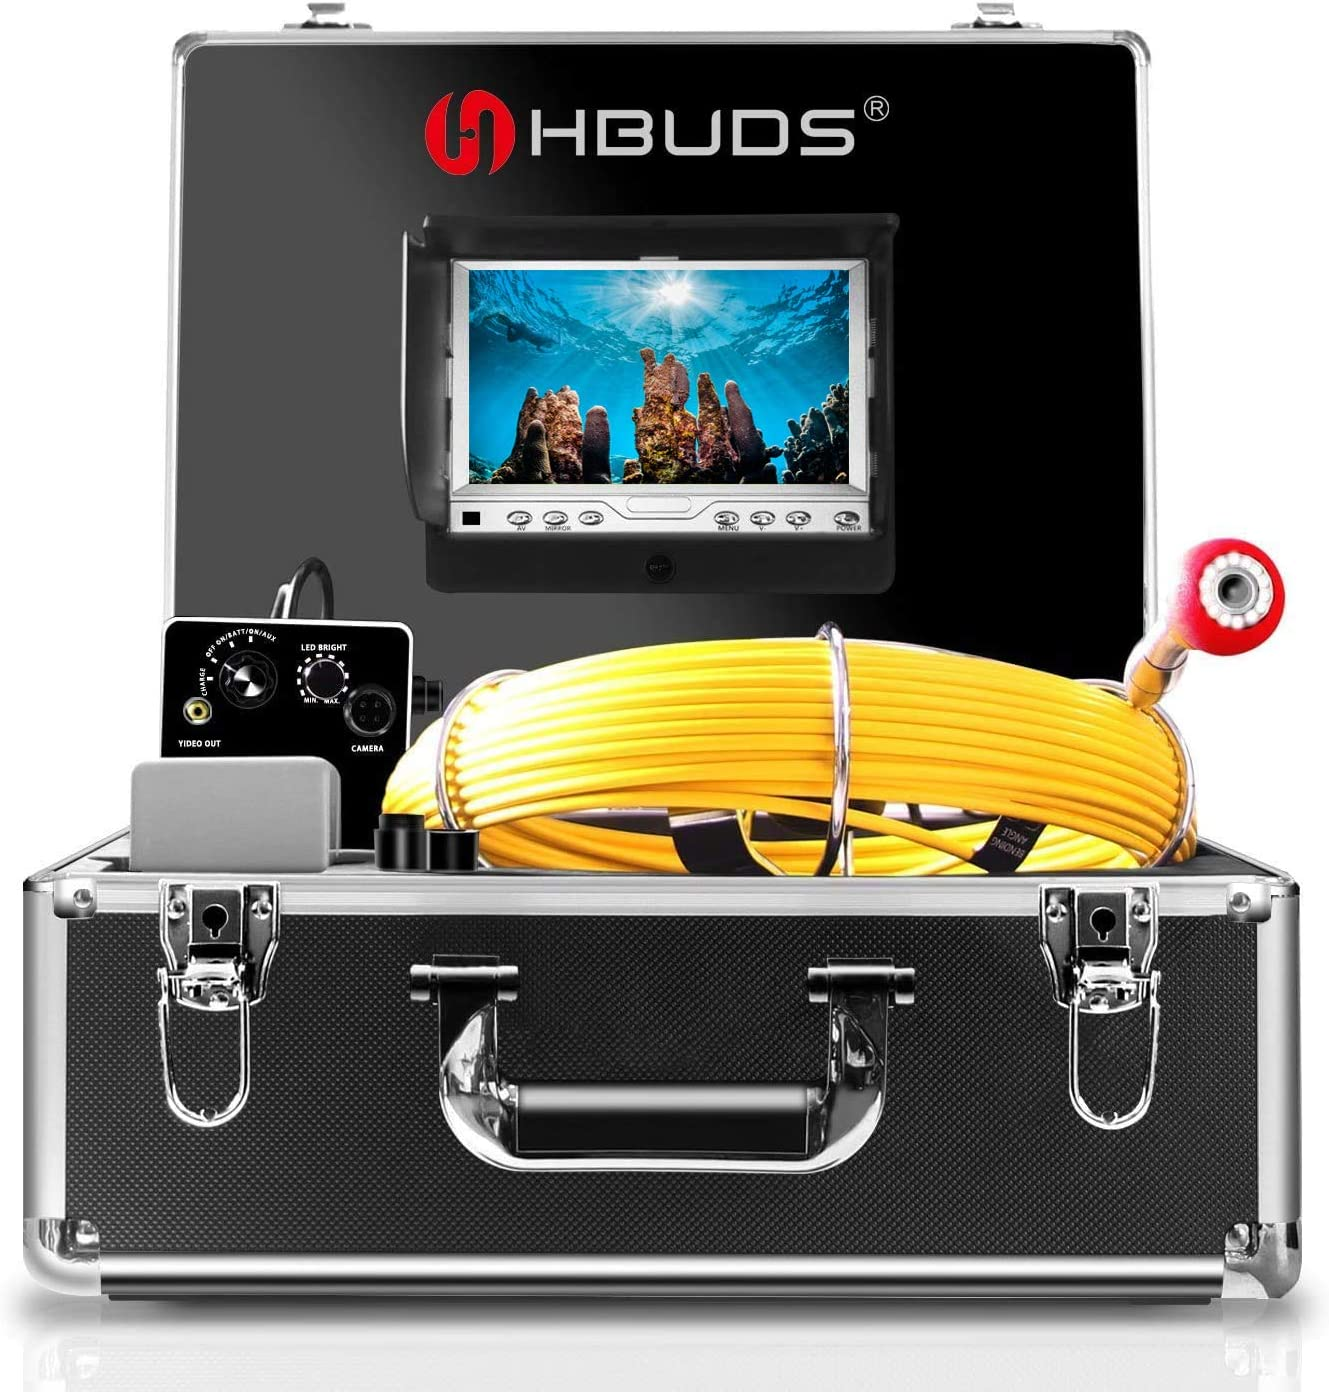 Pipe Inspection Camera,HBUDS Pipeline Drain Industrial Endoscope,30M/100ft IP68 Waterproof Snake Video System with 7 Inch LCD Monitor 1000TVL Sony CCD DVR Recorder Sewer Camera(Free 8GB SD Card)